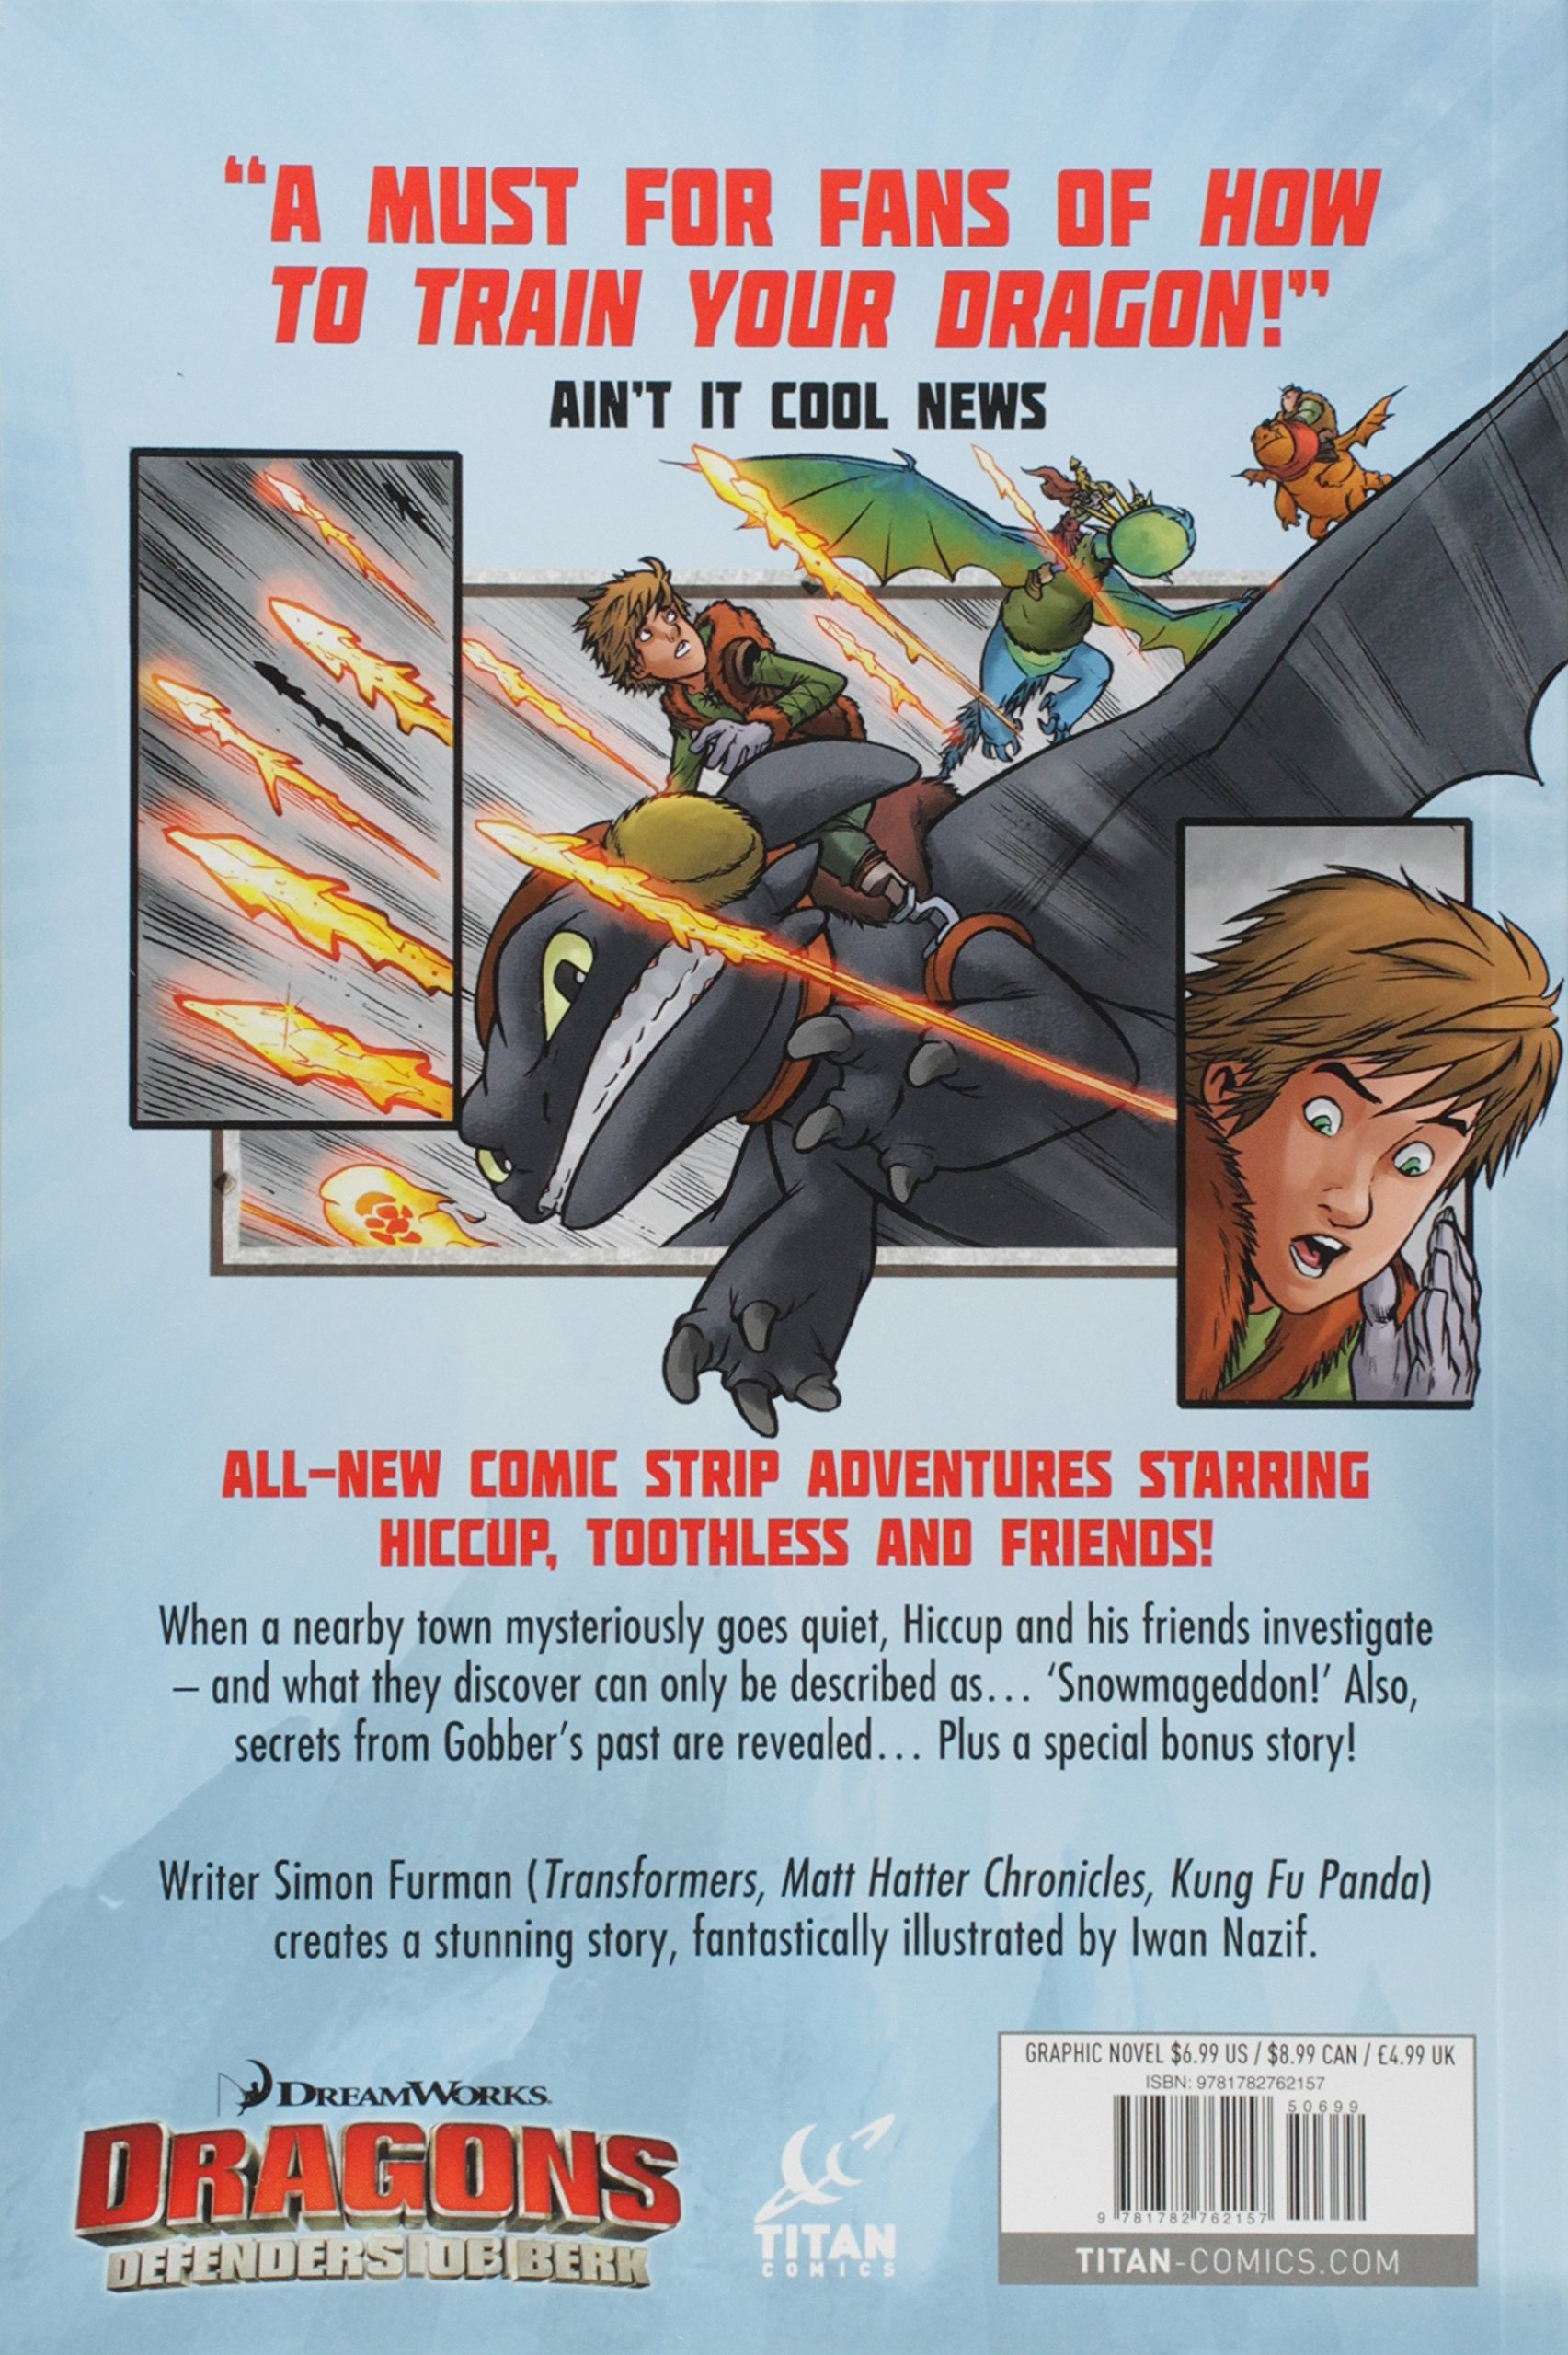 Dragons defenders of berk volume 2 snowmageddon how to train your dragons defenders of berk volume 2 snowmageddon how to train your dragon tv how to train your dragon graphic novels simon furman iwan nazif ccuart Images